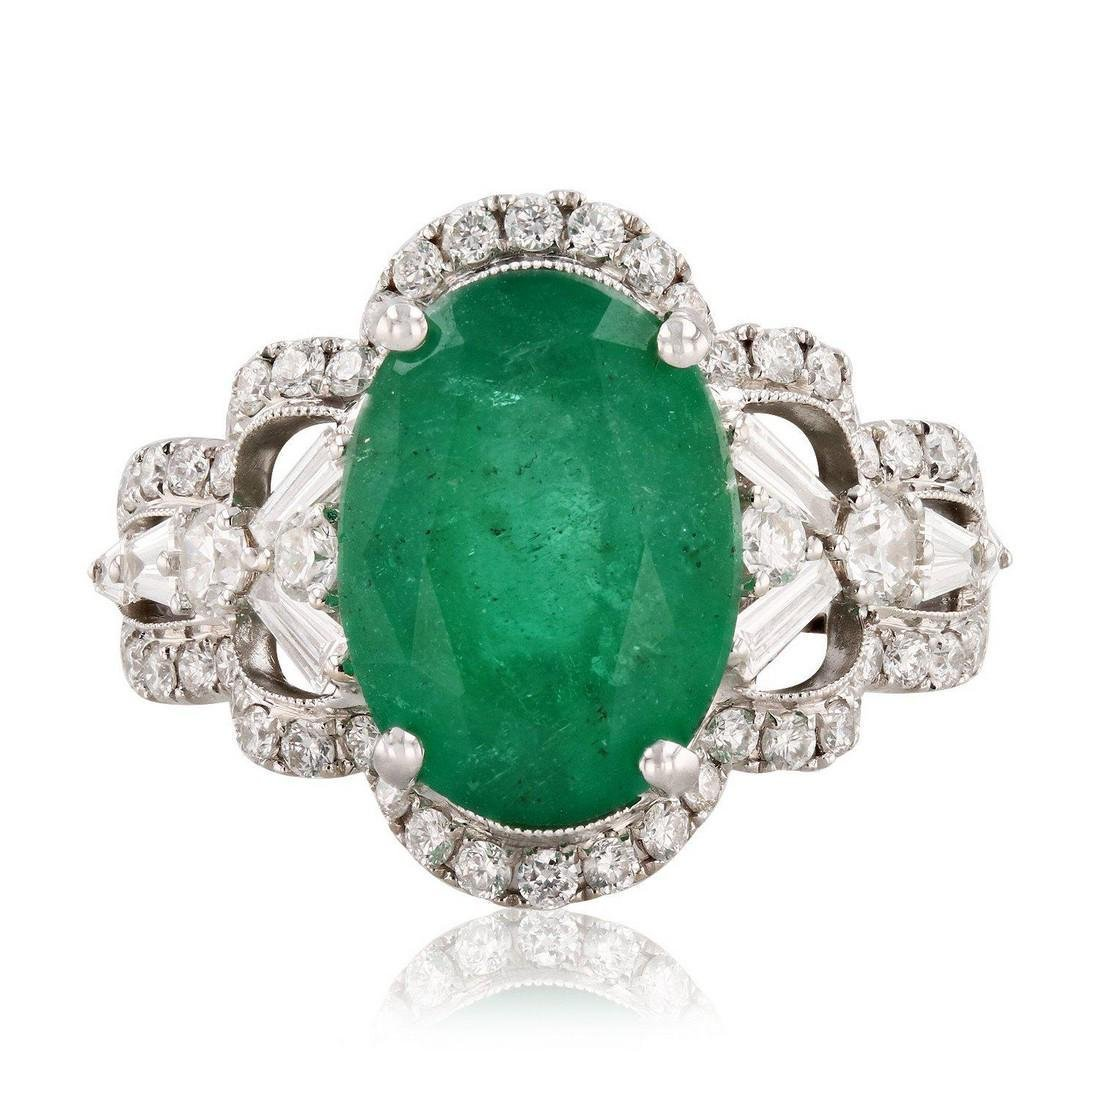 4.10ct Emerald and 1.15ctw Diamond 18KT White Gold Ring